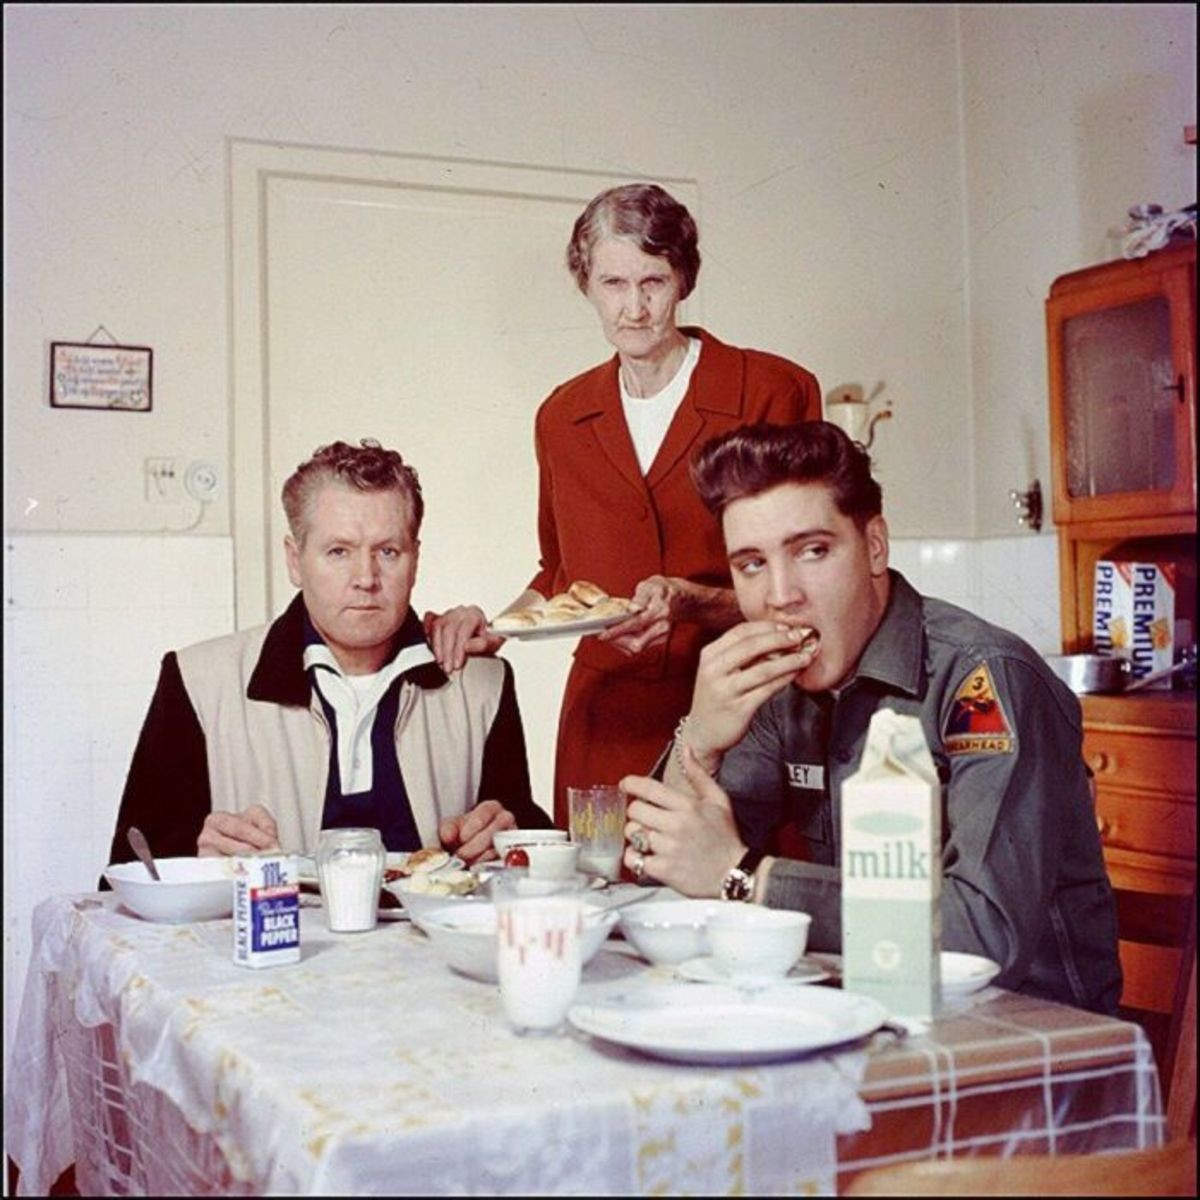 Elvis' parents look so disappointed. .. To me it looks like a photoshoot, you have the stern and angry looking parents and then the carefree and nonchalant Elvis eating and looking in the distance.